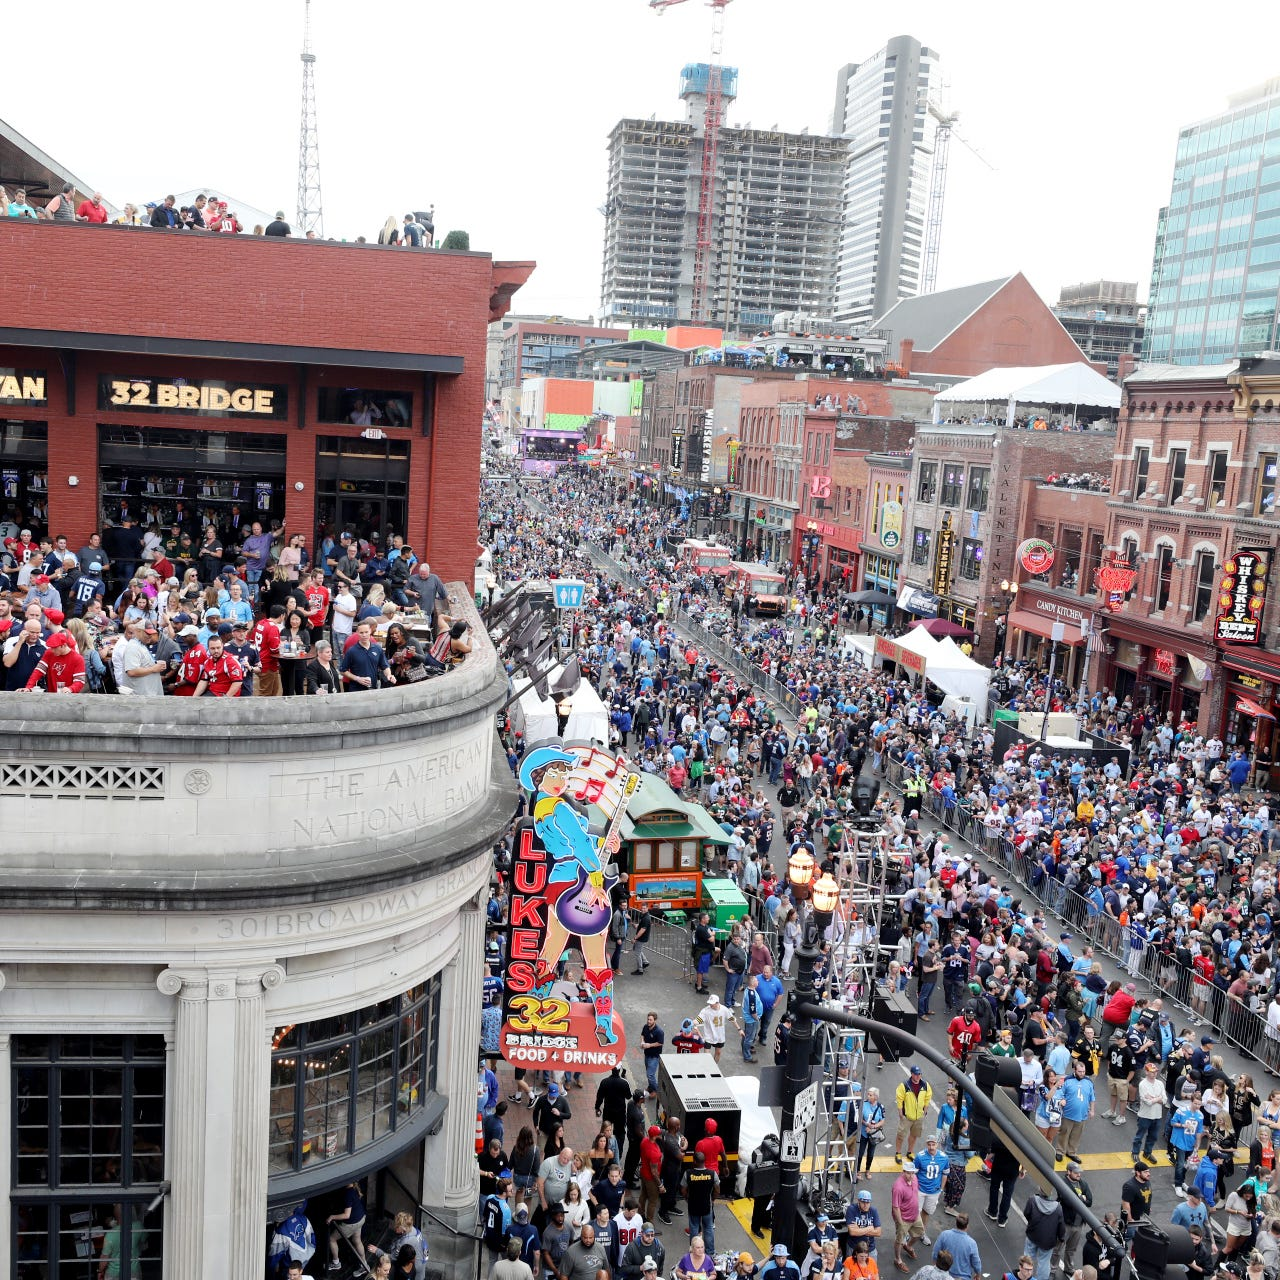 NFL Draft in Nashville: 'There never has been a scene like this for any draft'